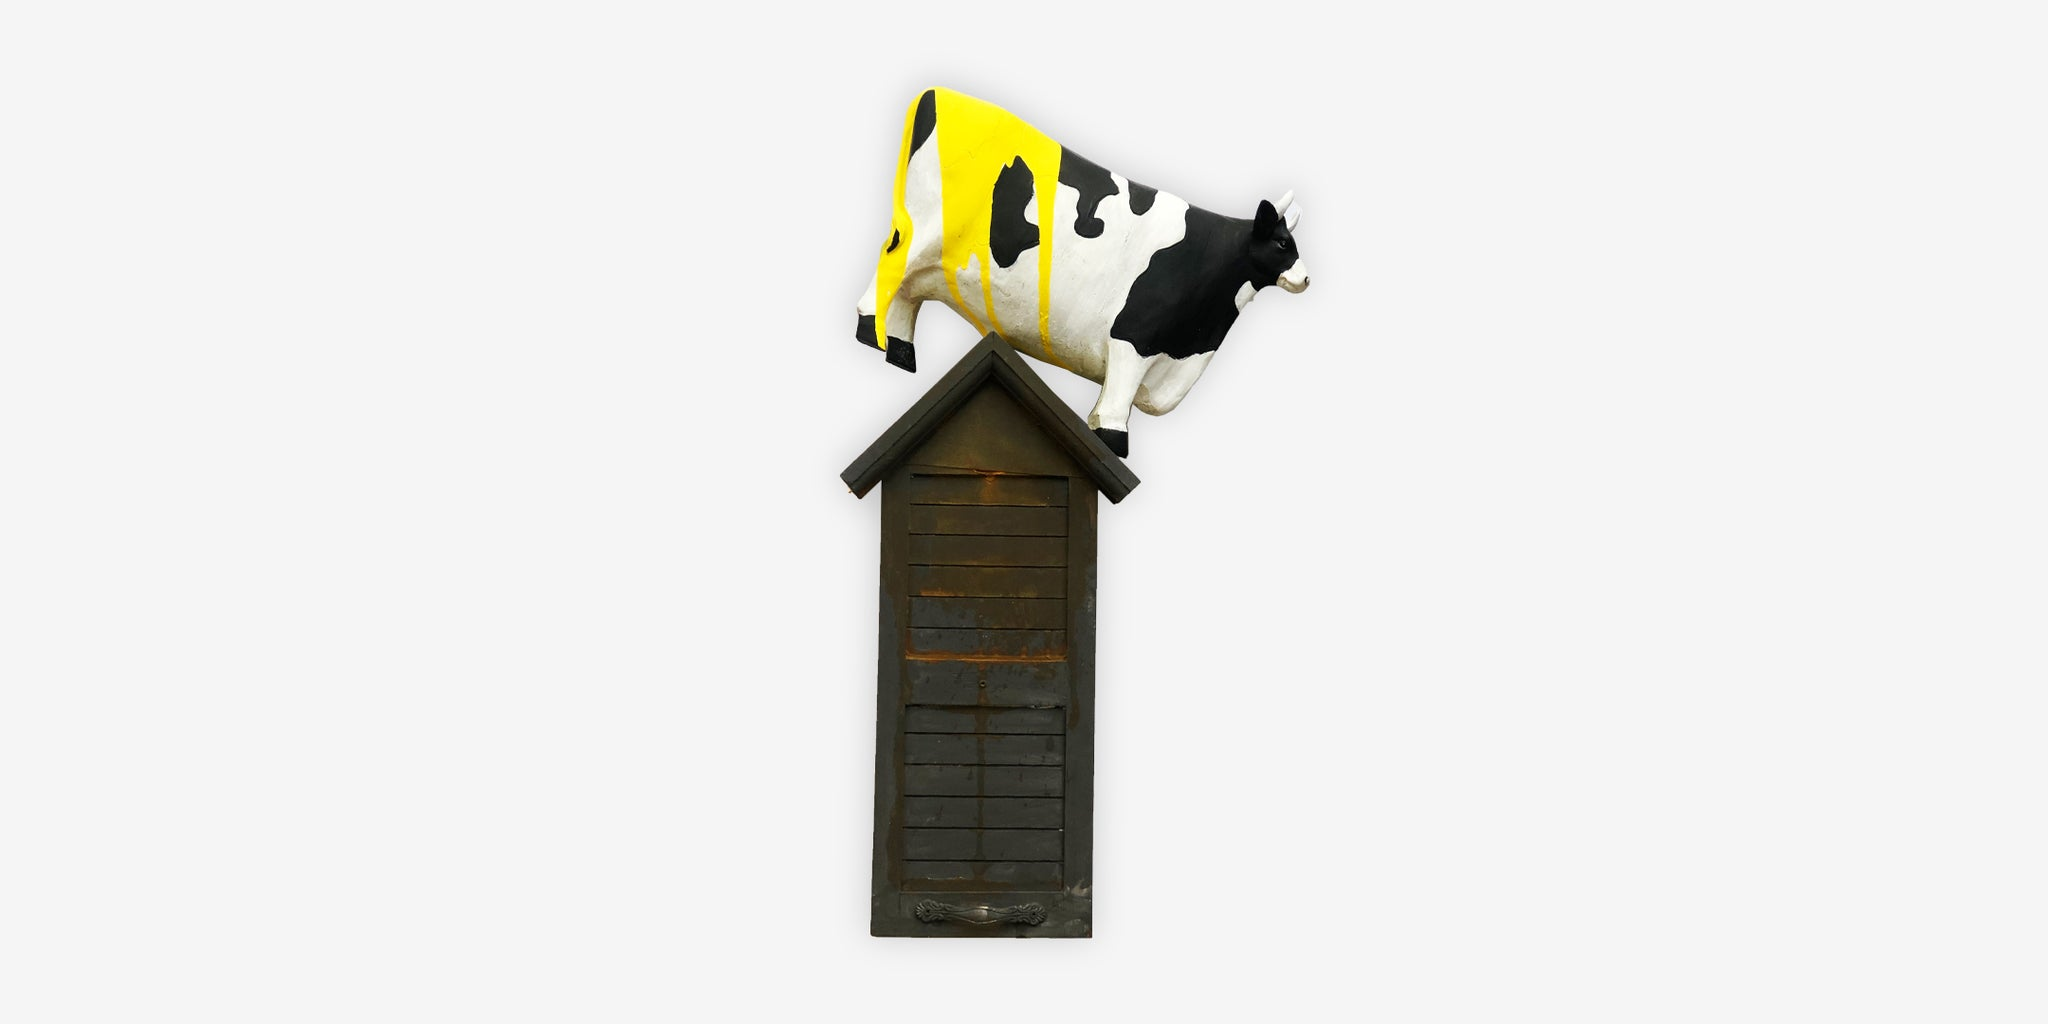 ART - THE PRESIDENT IS LIKE A COW ON TOP OF A HOUSE, NO-ONE CAN UNDERSTAND HOW SUCH AN ANIMAL GOT UP THERE.